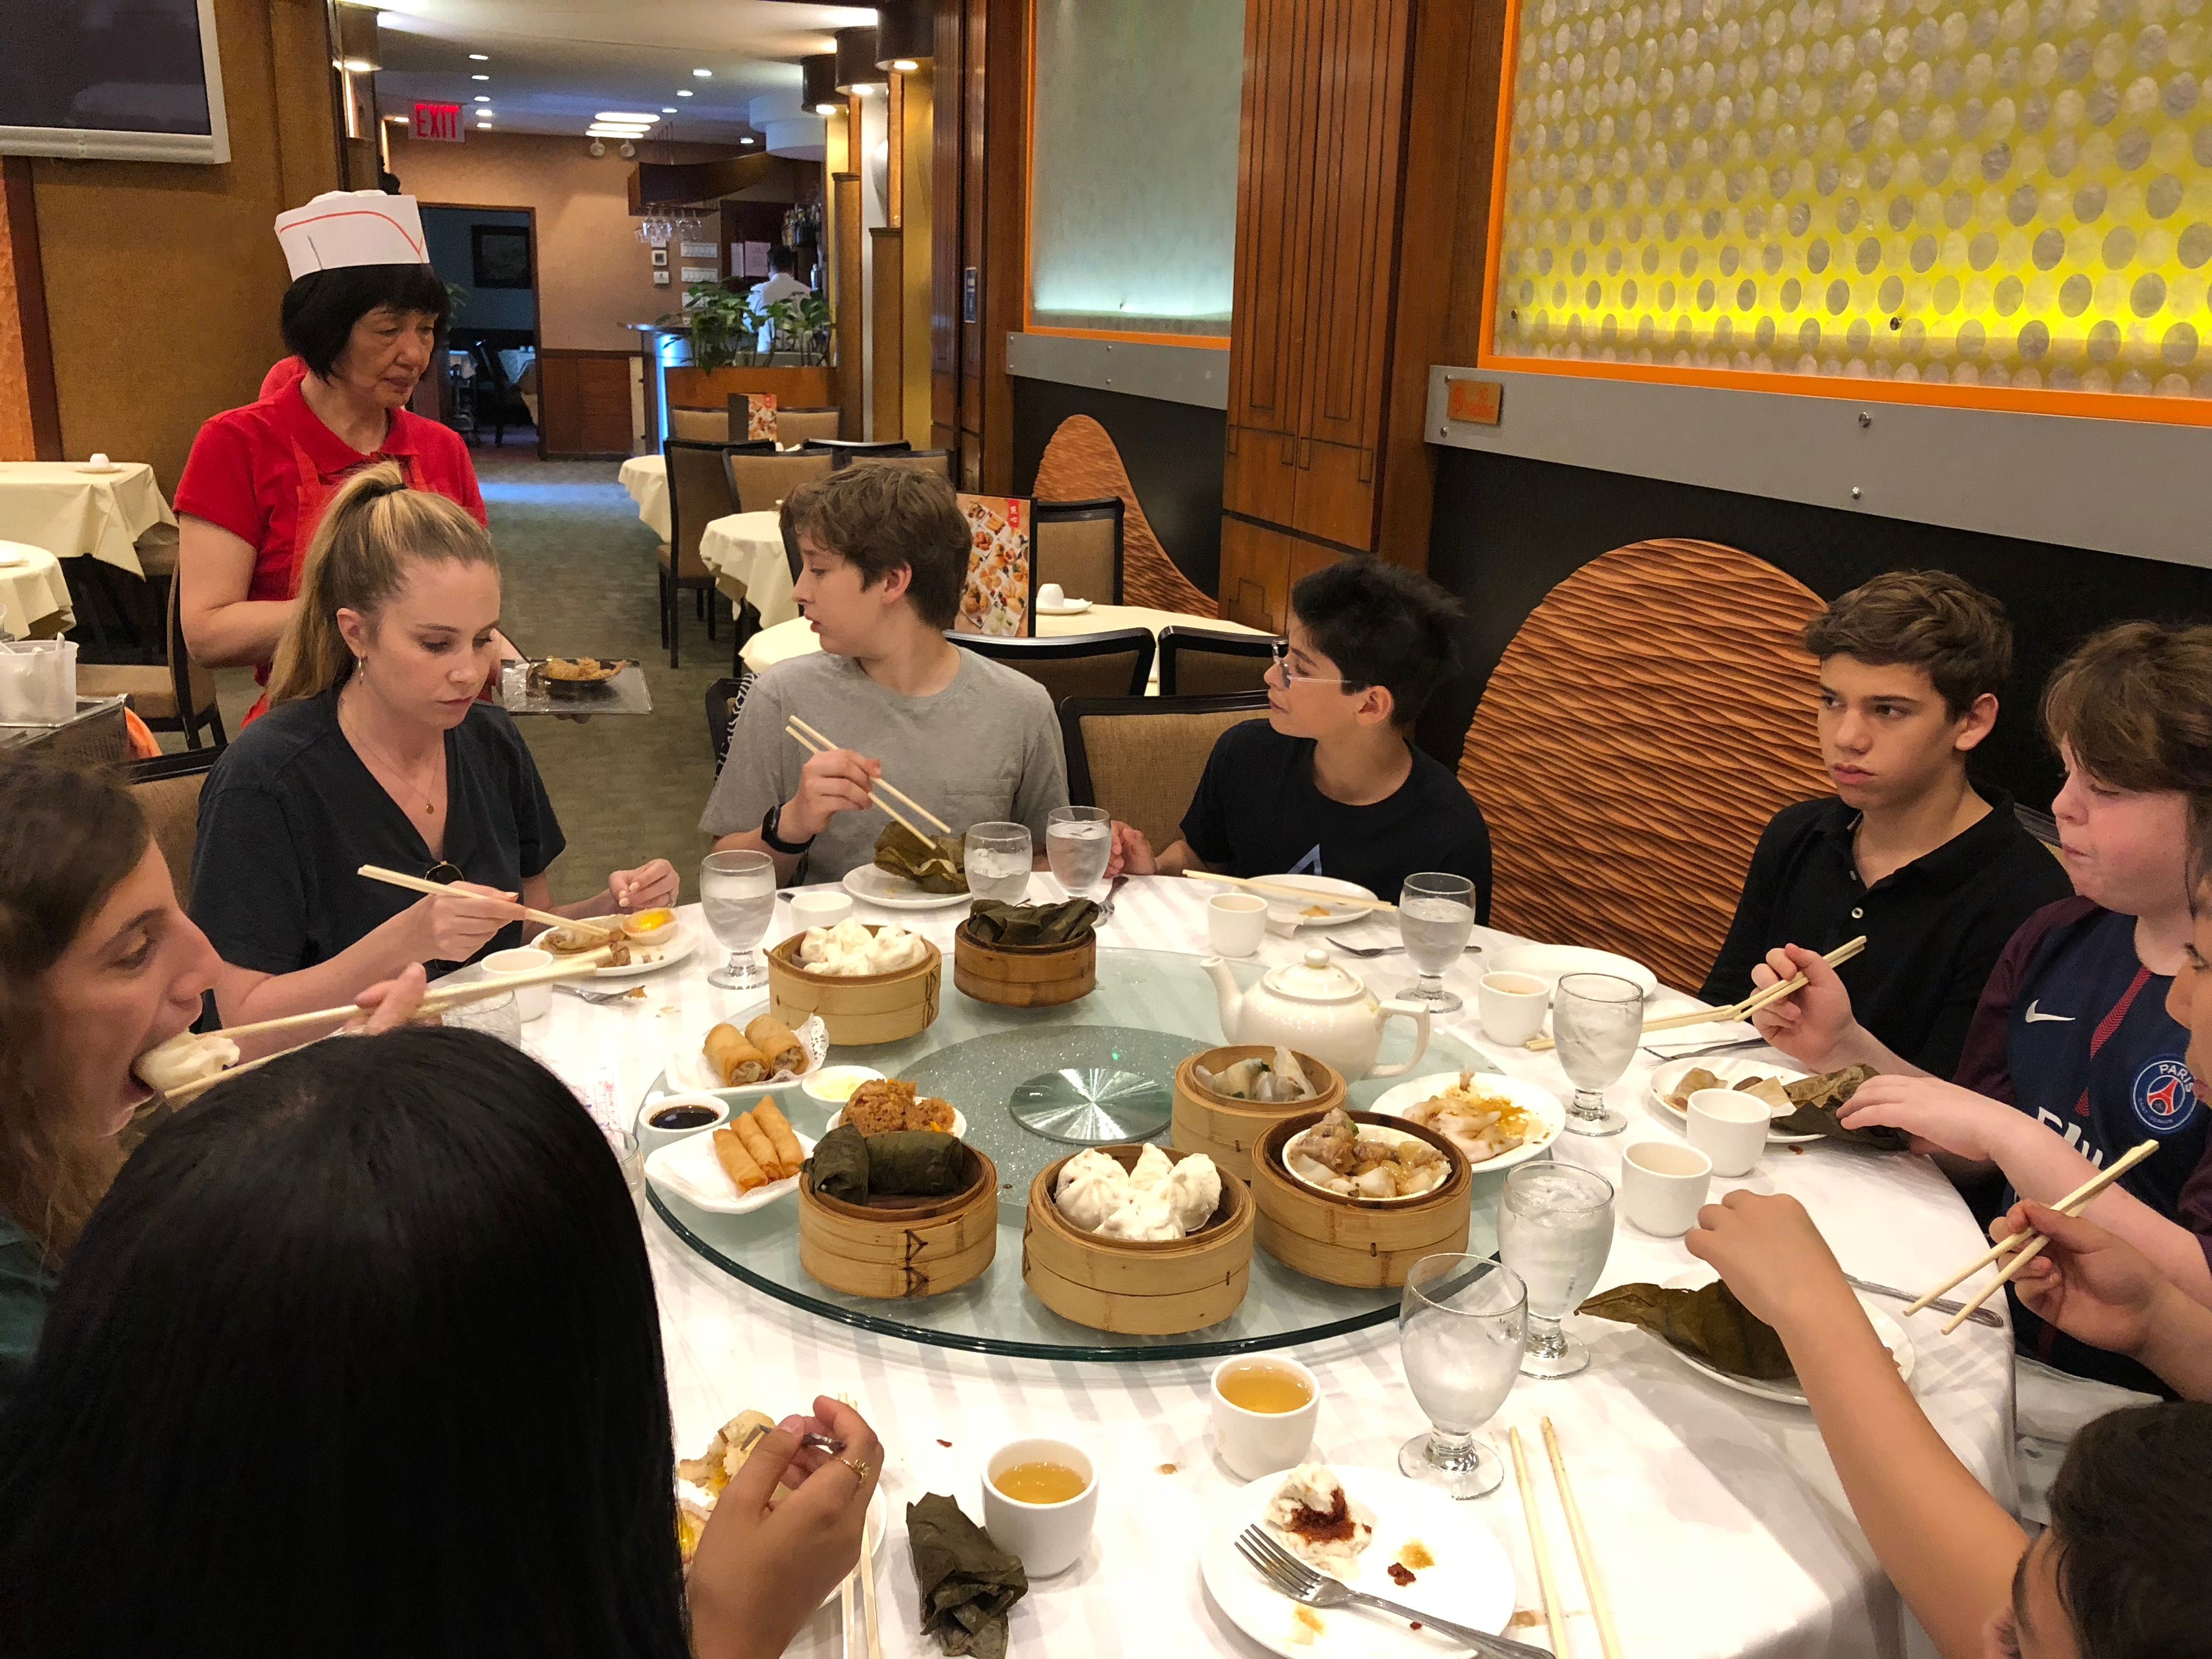 Everyone digs in to their dim sum